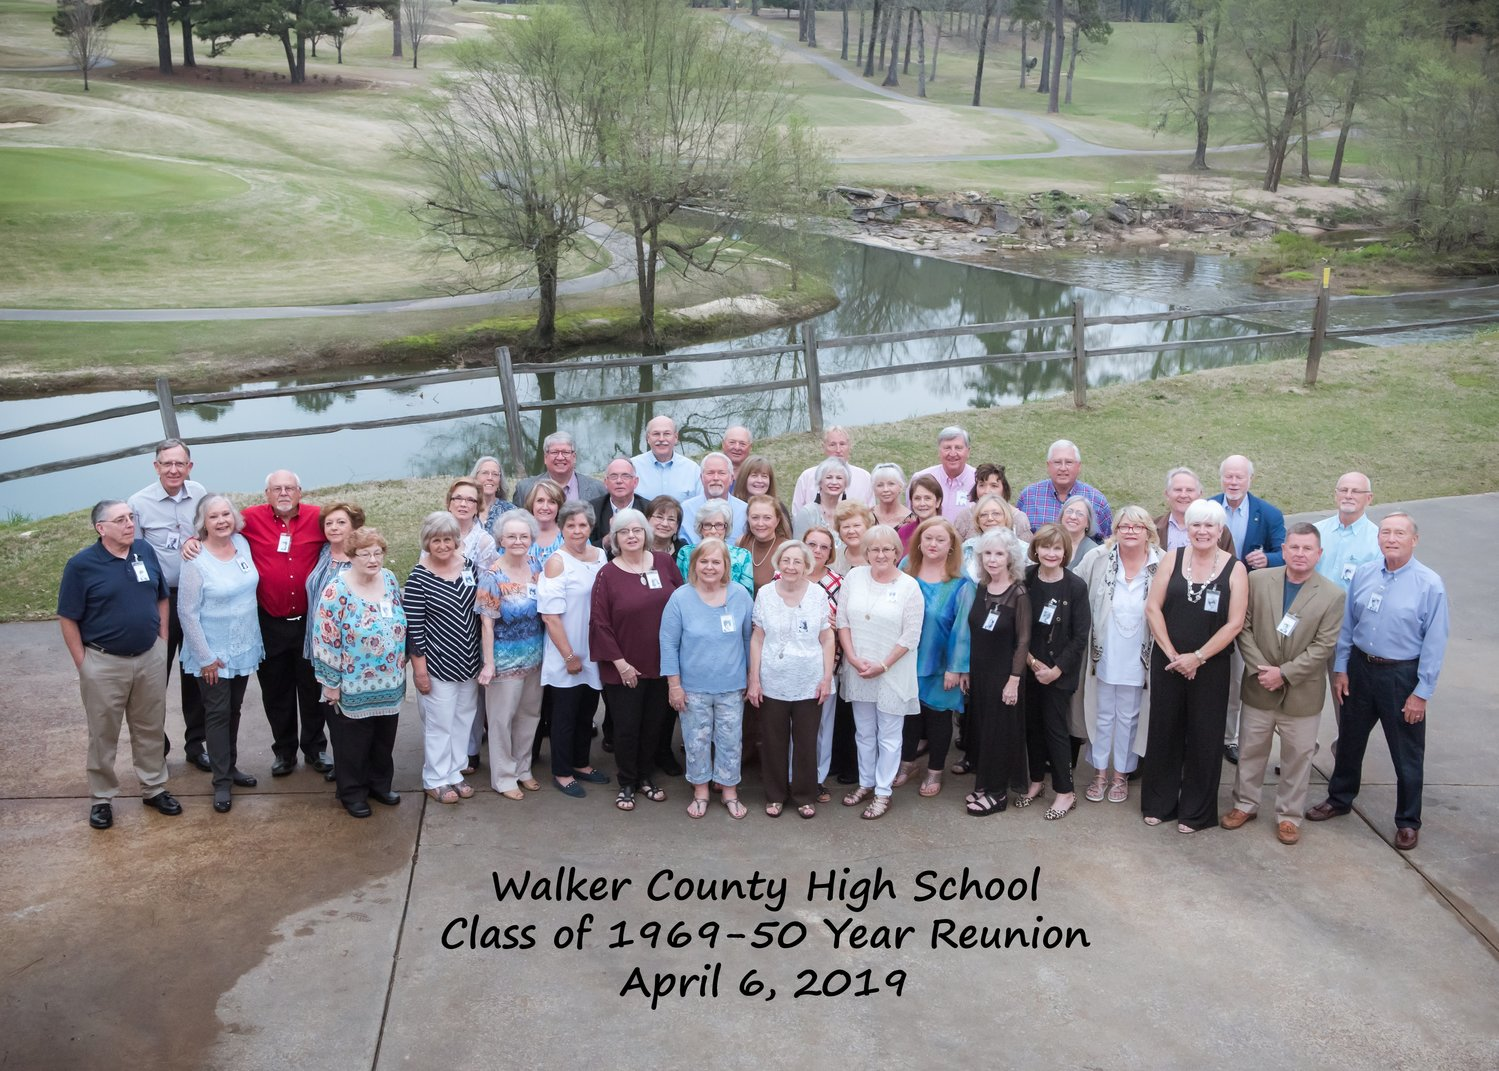 The Walker County High School Class of 1969 held a reunion at Musgrove Country Club on April 6, 2019. The classes of 1967 and 1968 also held their reunions that evening.